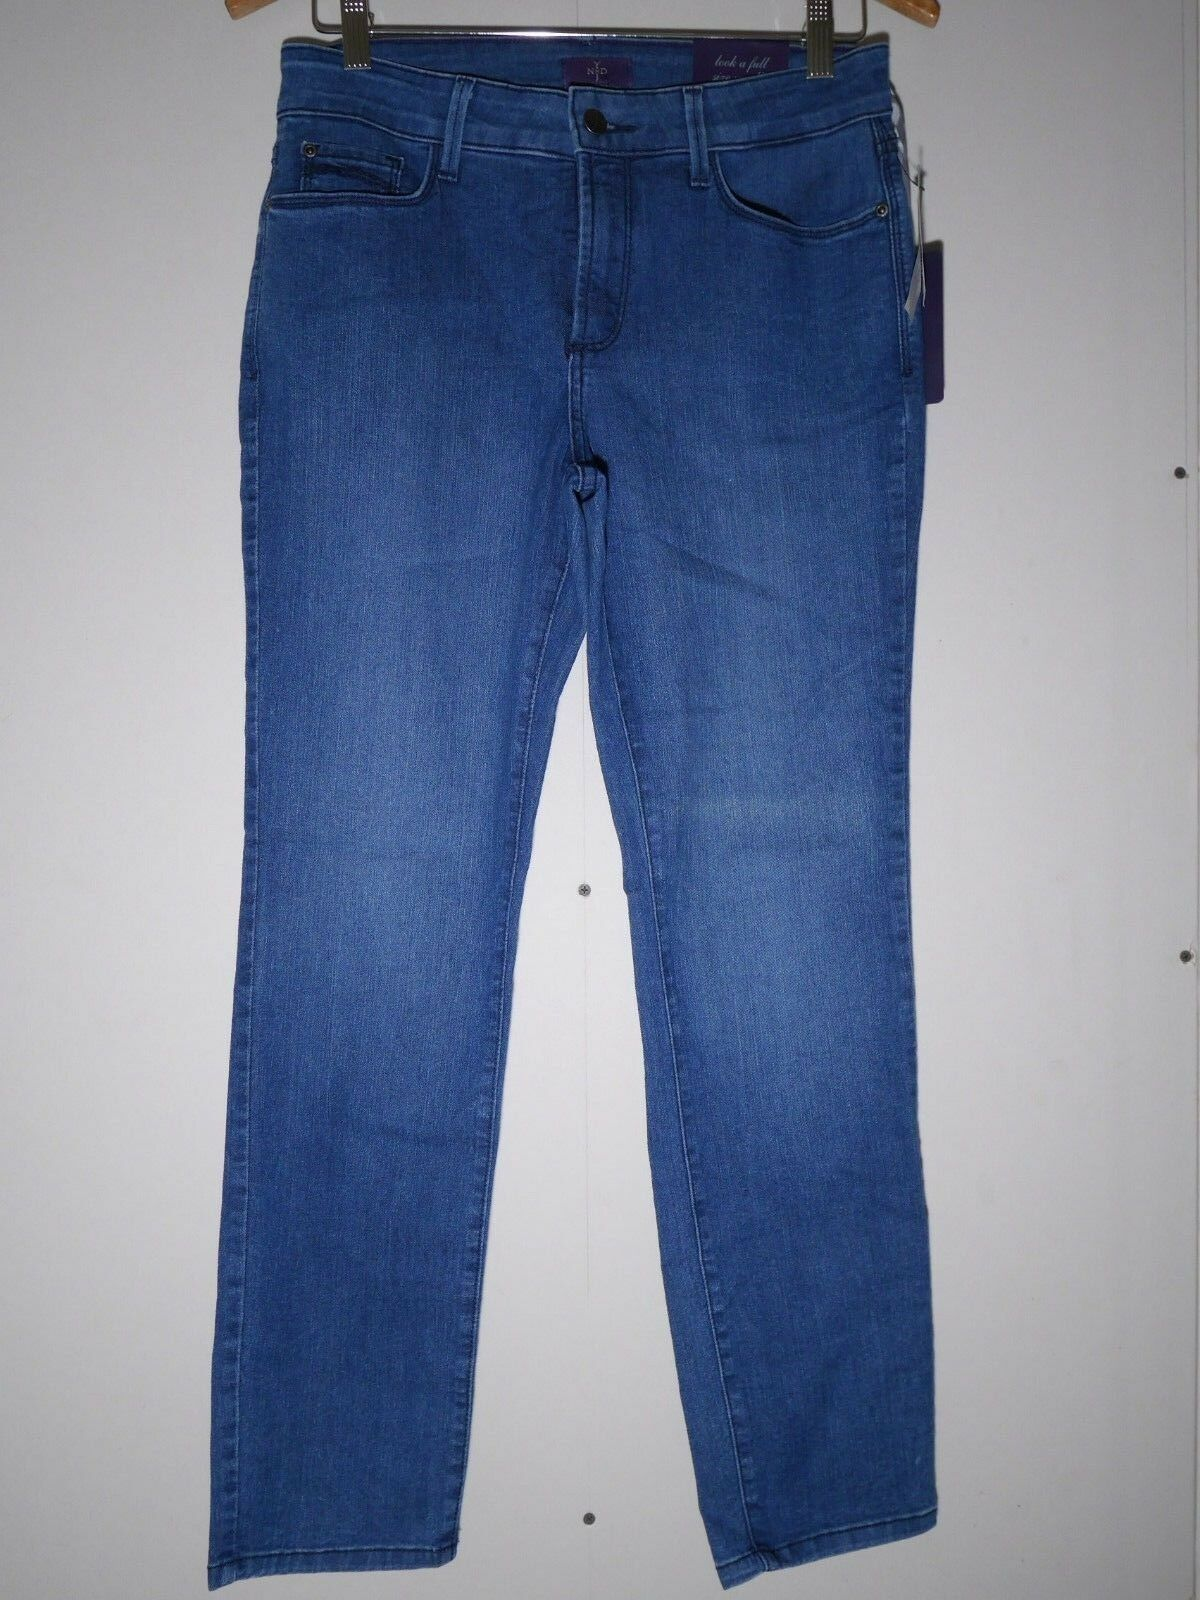 Not Your Daughter's Jeans NYDJ Alina Skinny Ankle Legging High Rise Jeans 4